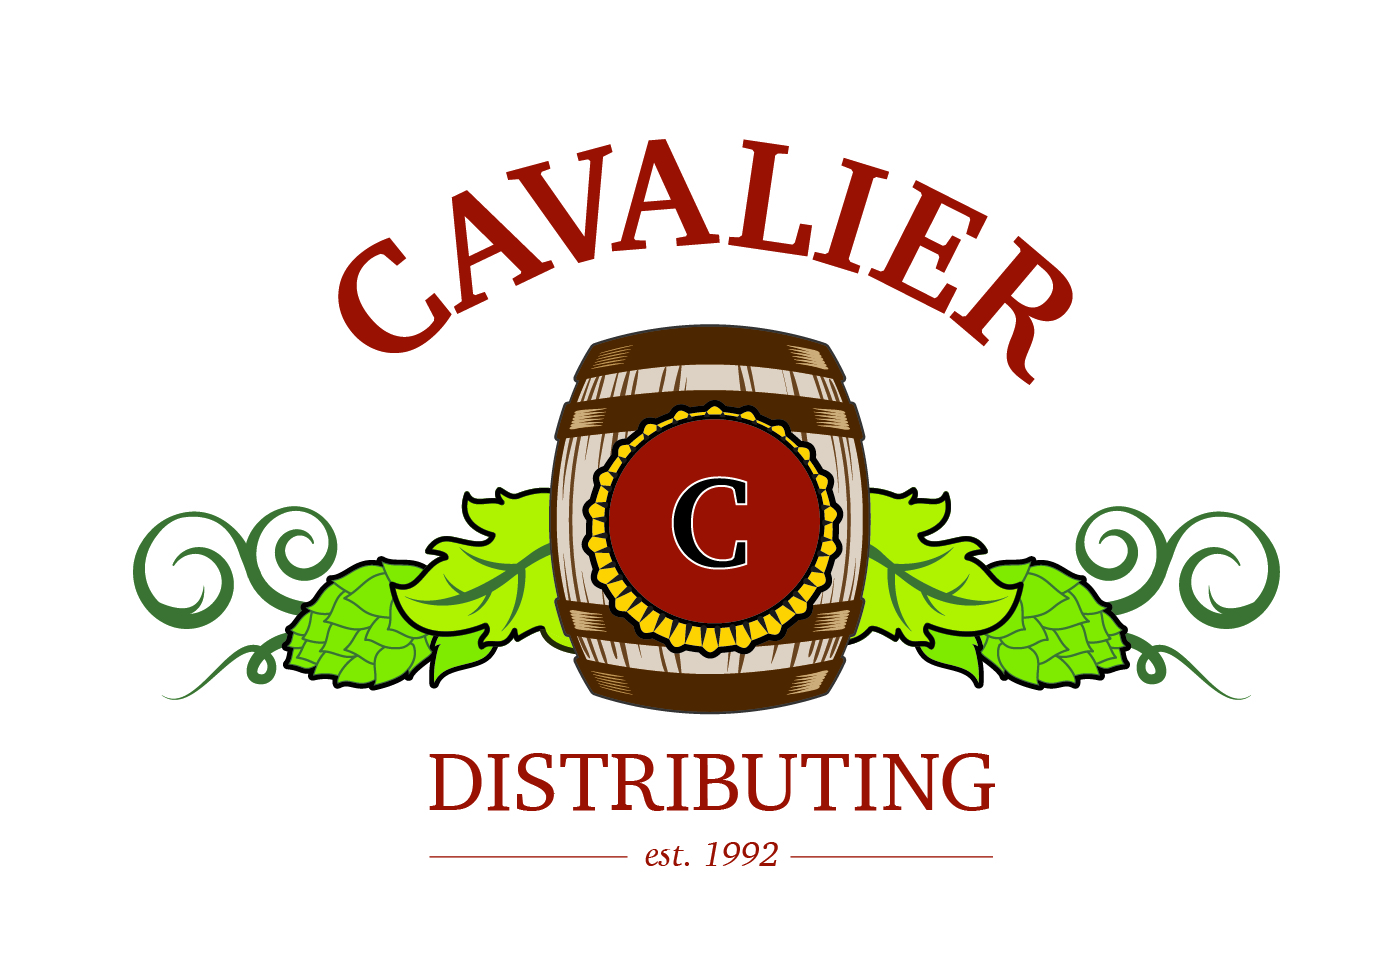 Thank you Cavalier Distributing!